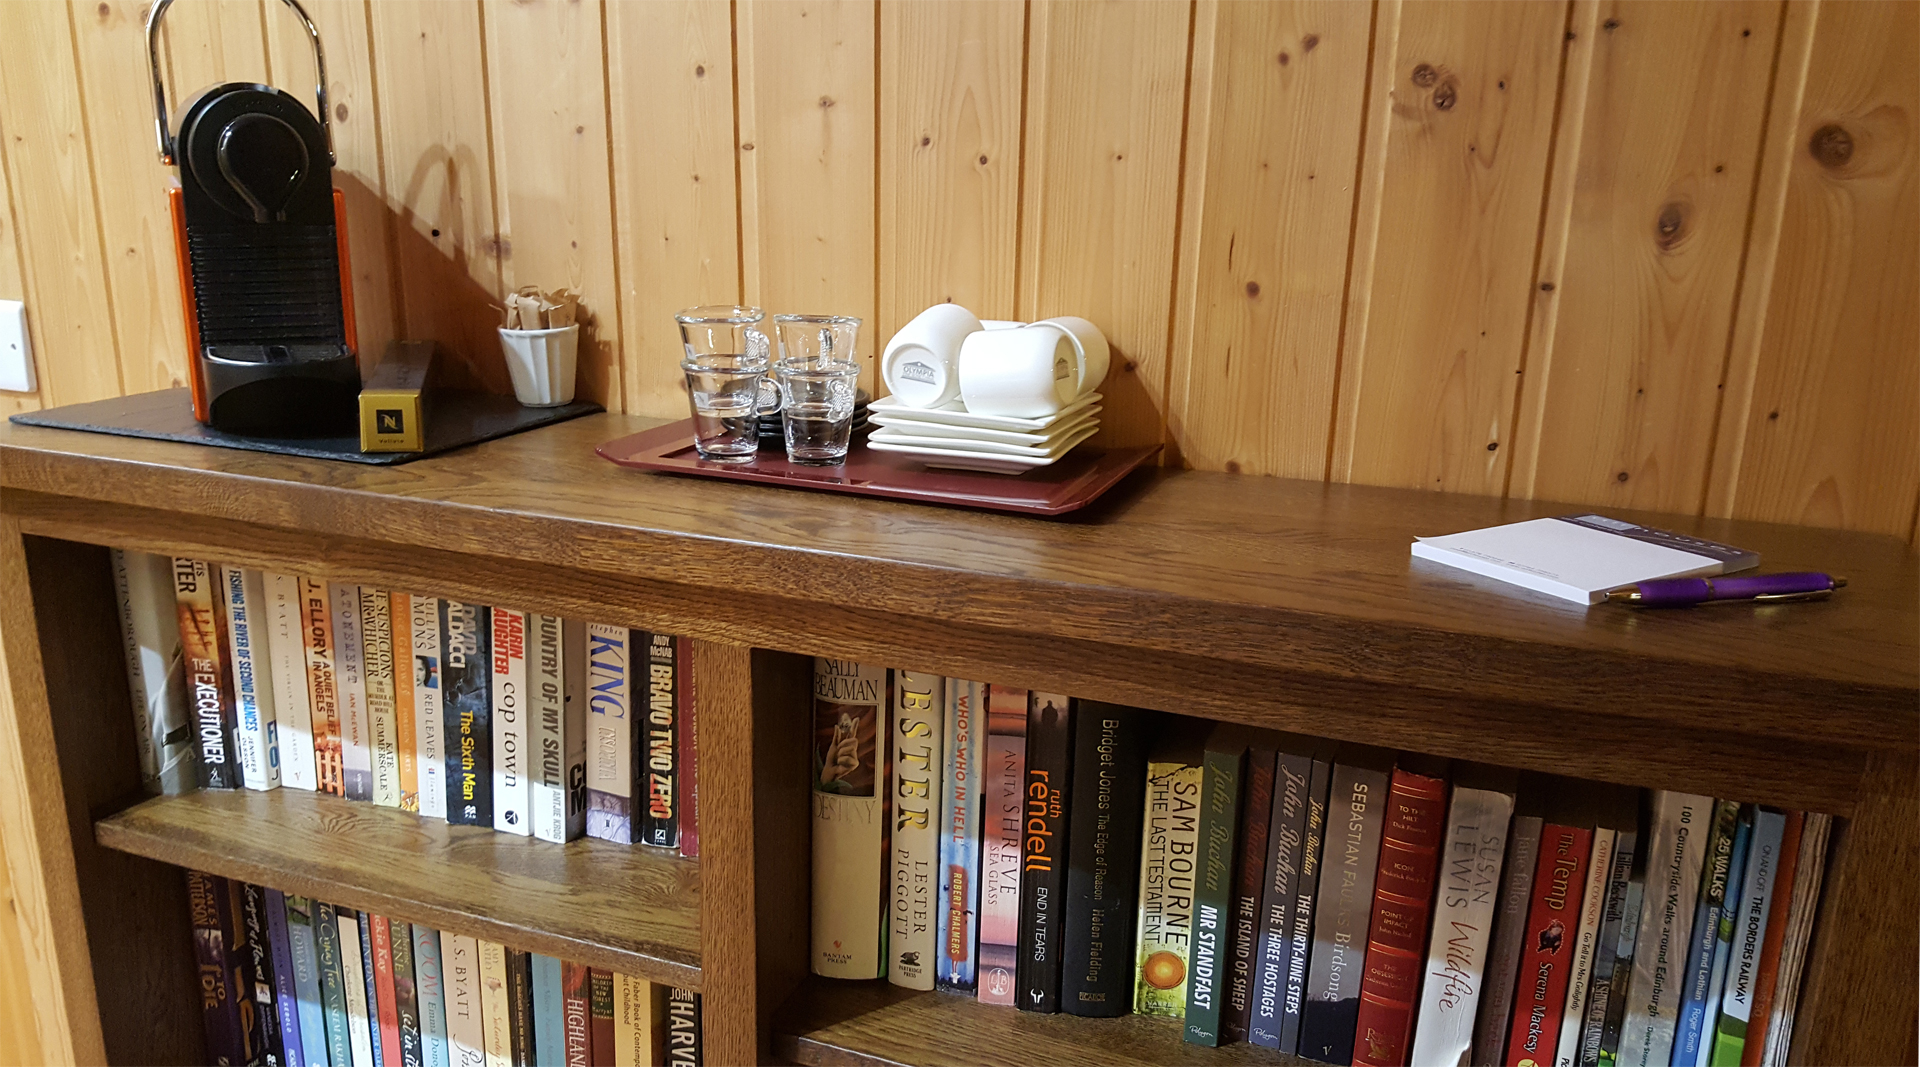 Book shelf with coffee marker on top in the hallway of The Ramsay lodge at Airhouses Luxury Self Catering Lodges in Scottish Borders